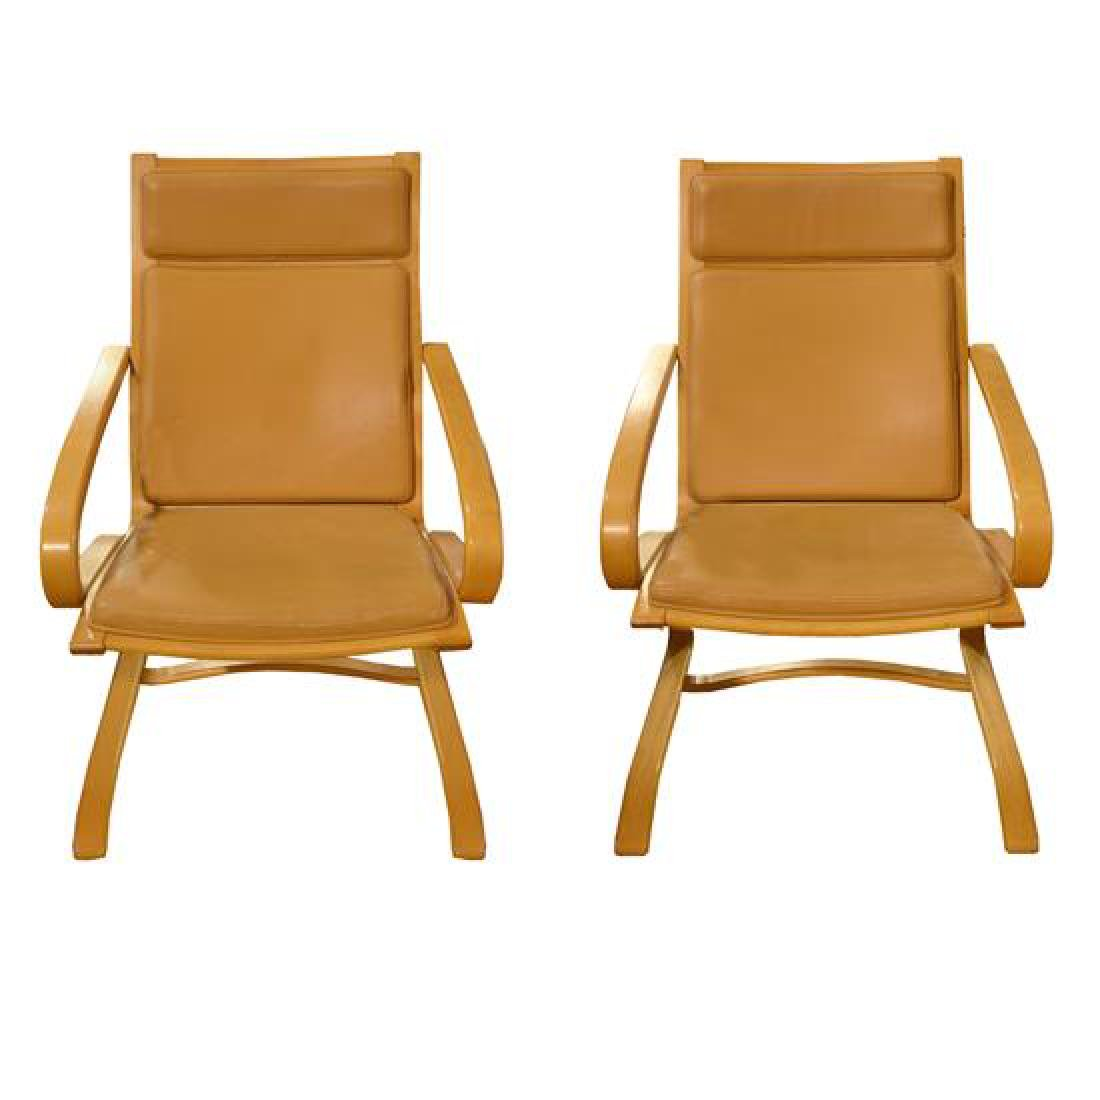 "A Pair of Bentwood Mid-Century Chairs 23.5"" W x 27"" D x"